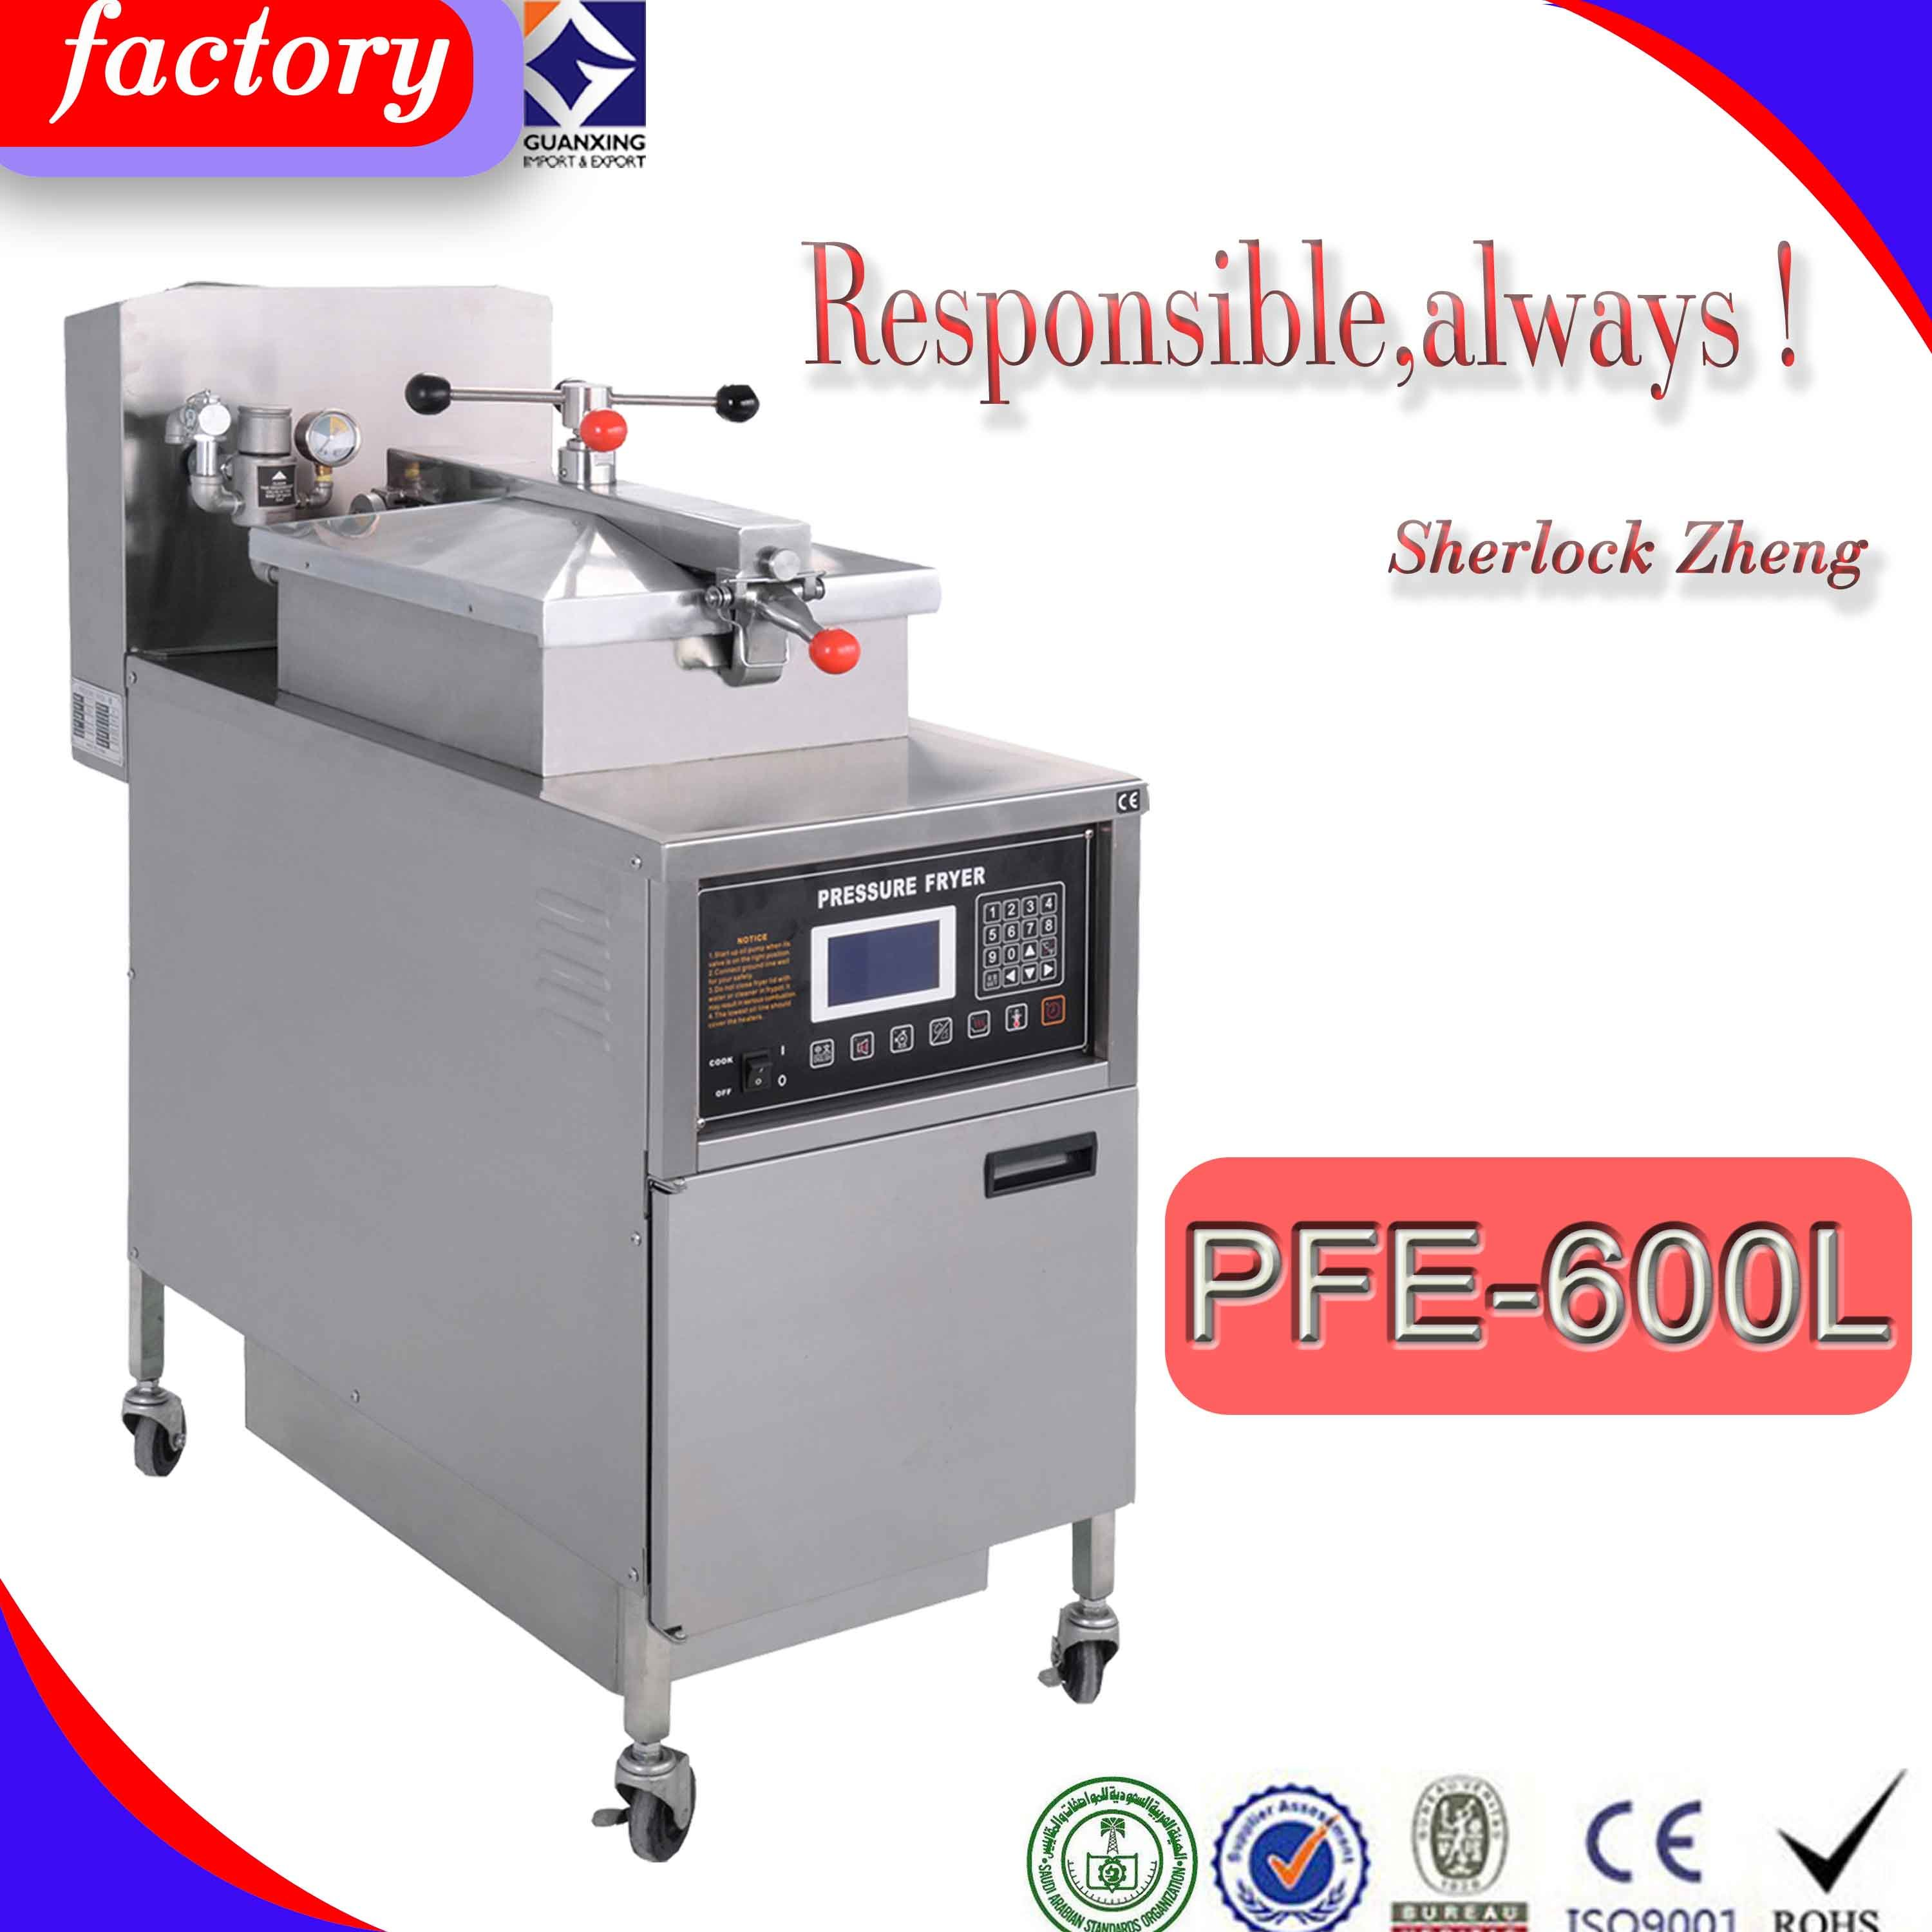 Pfe-600L Commercial Free Standing Electric Chicken Deep Fat Pressure Fryers